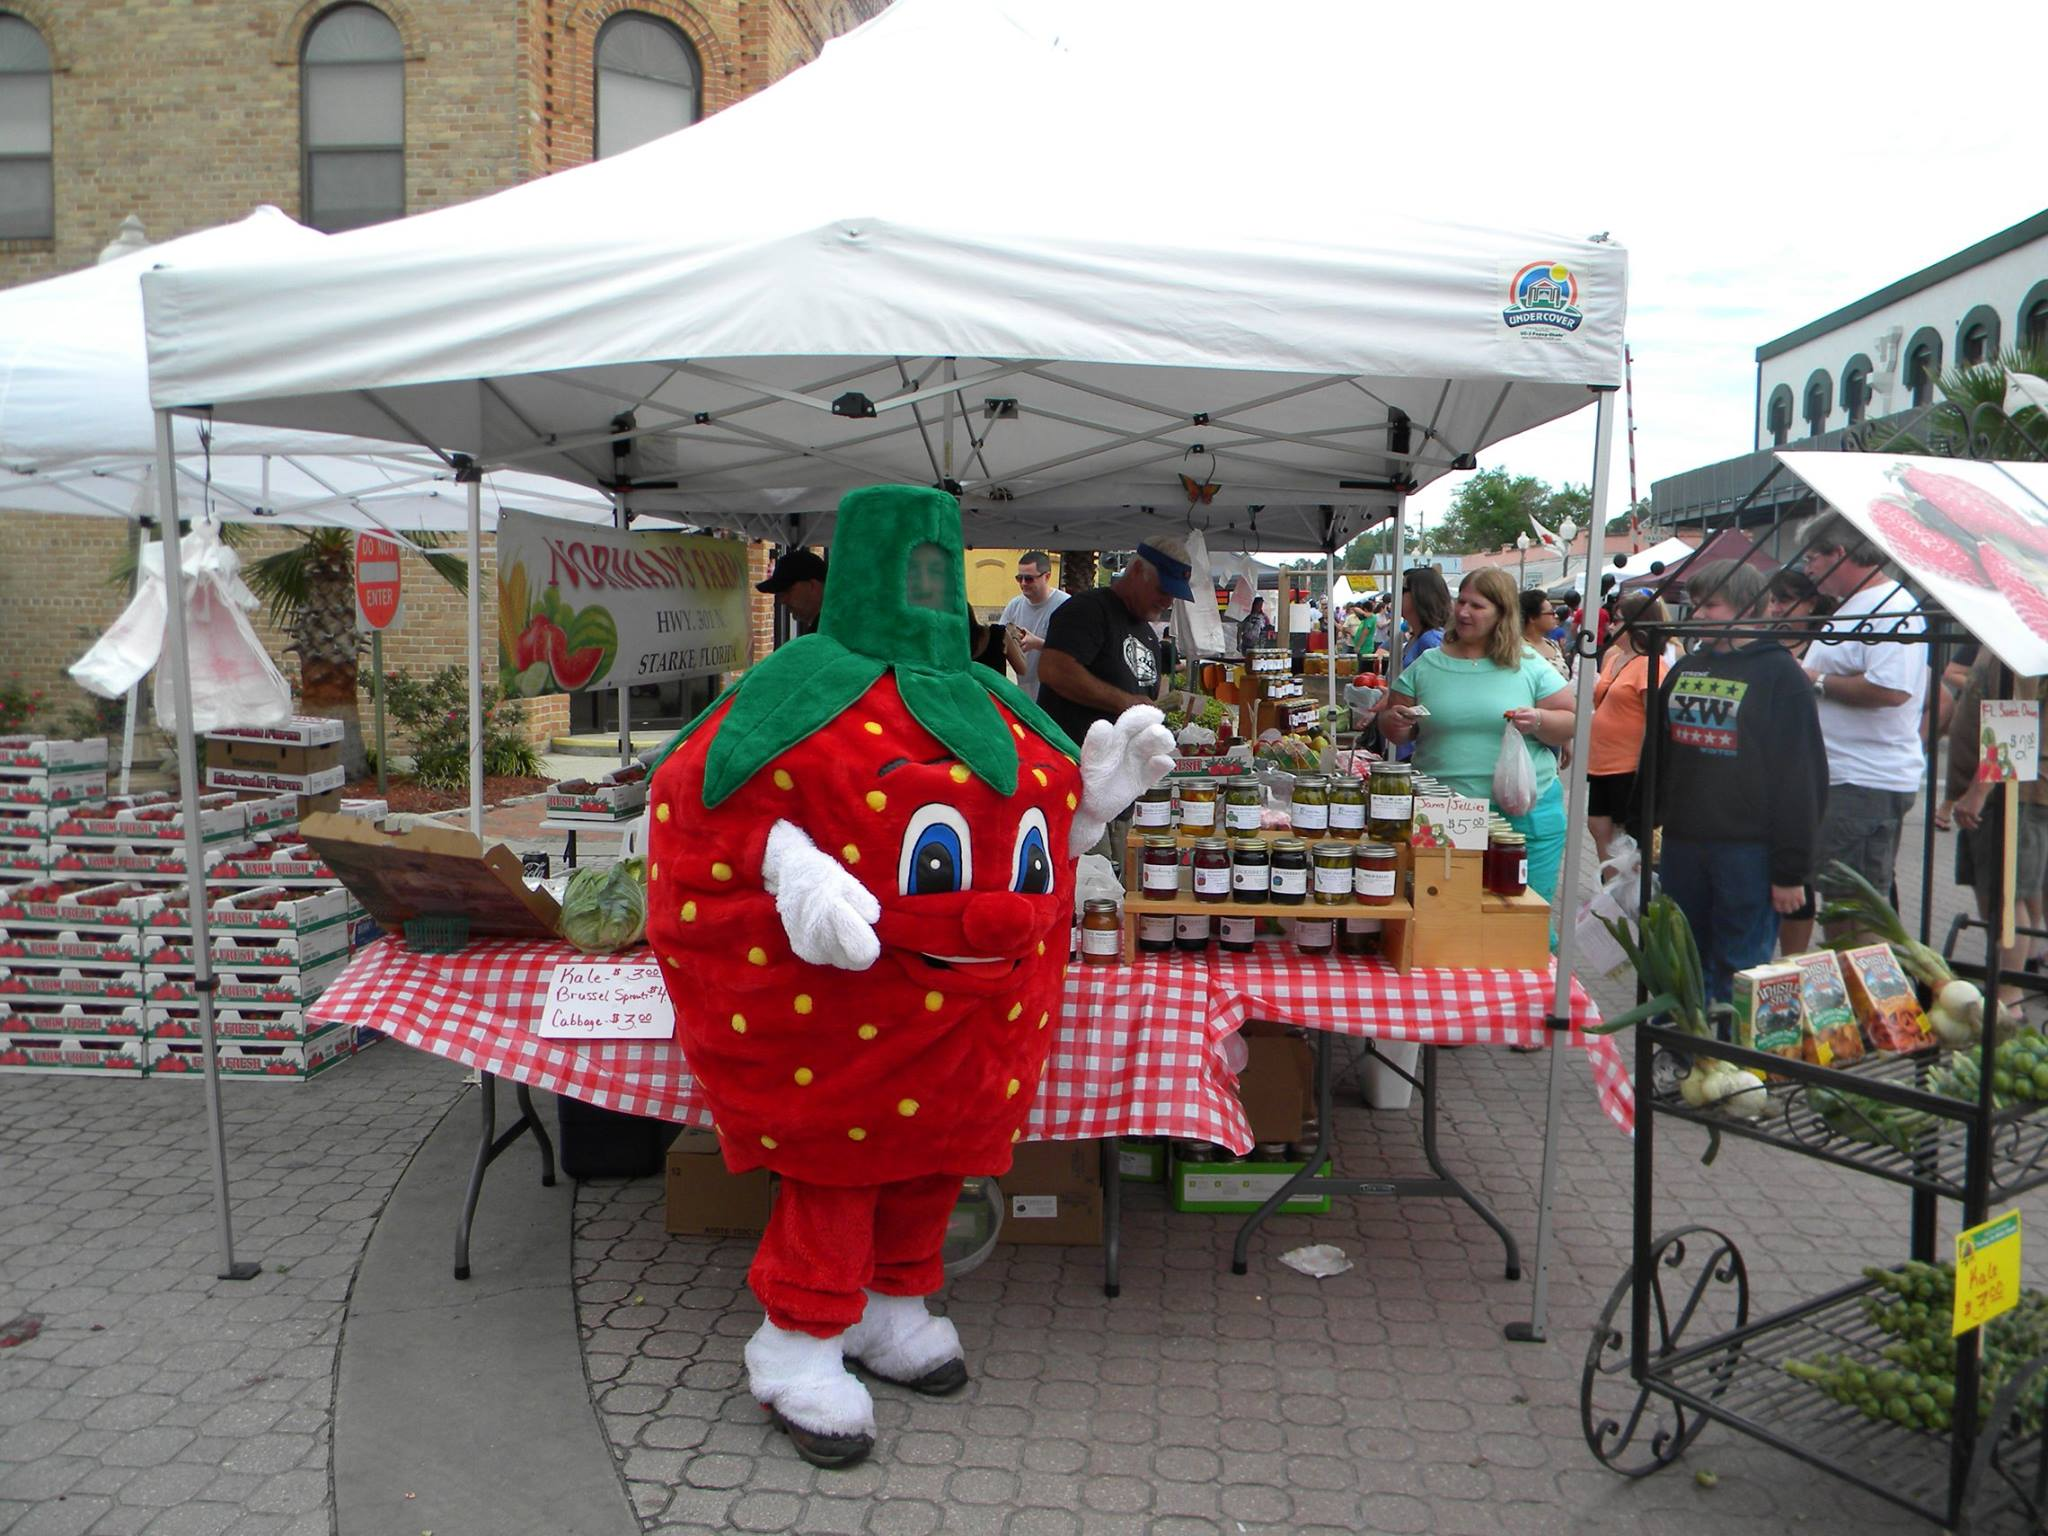 Bradford County Strawberry Festival, April 8 and 9, 2017, Starke, FL